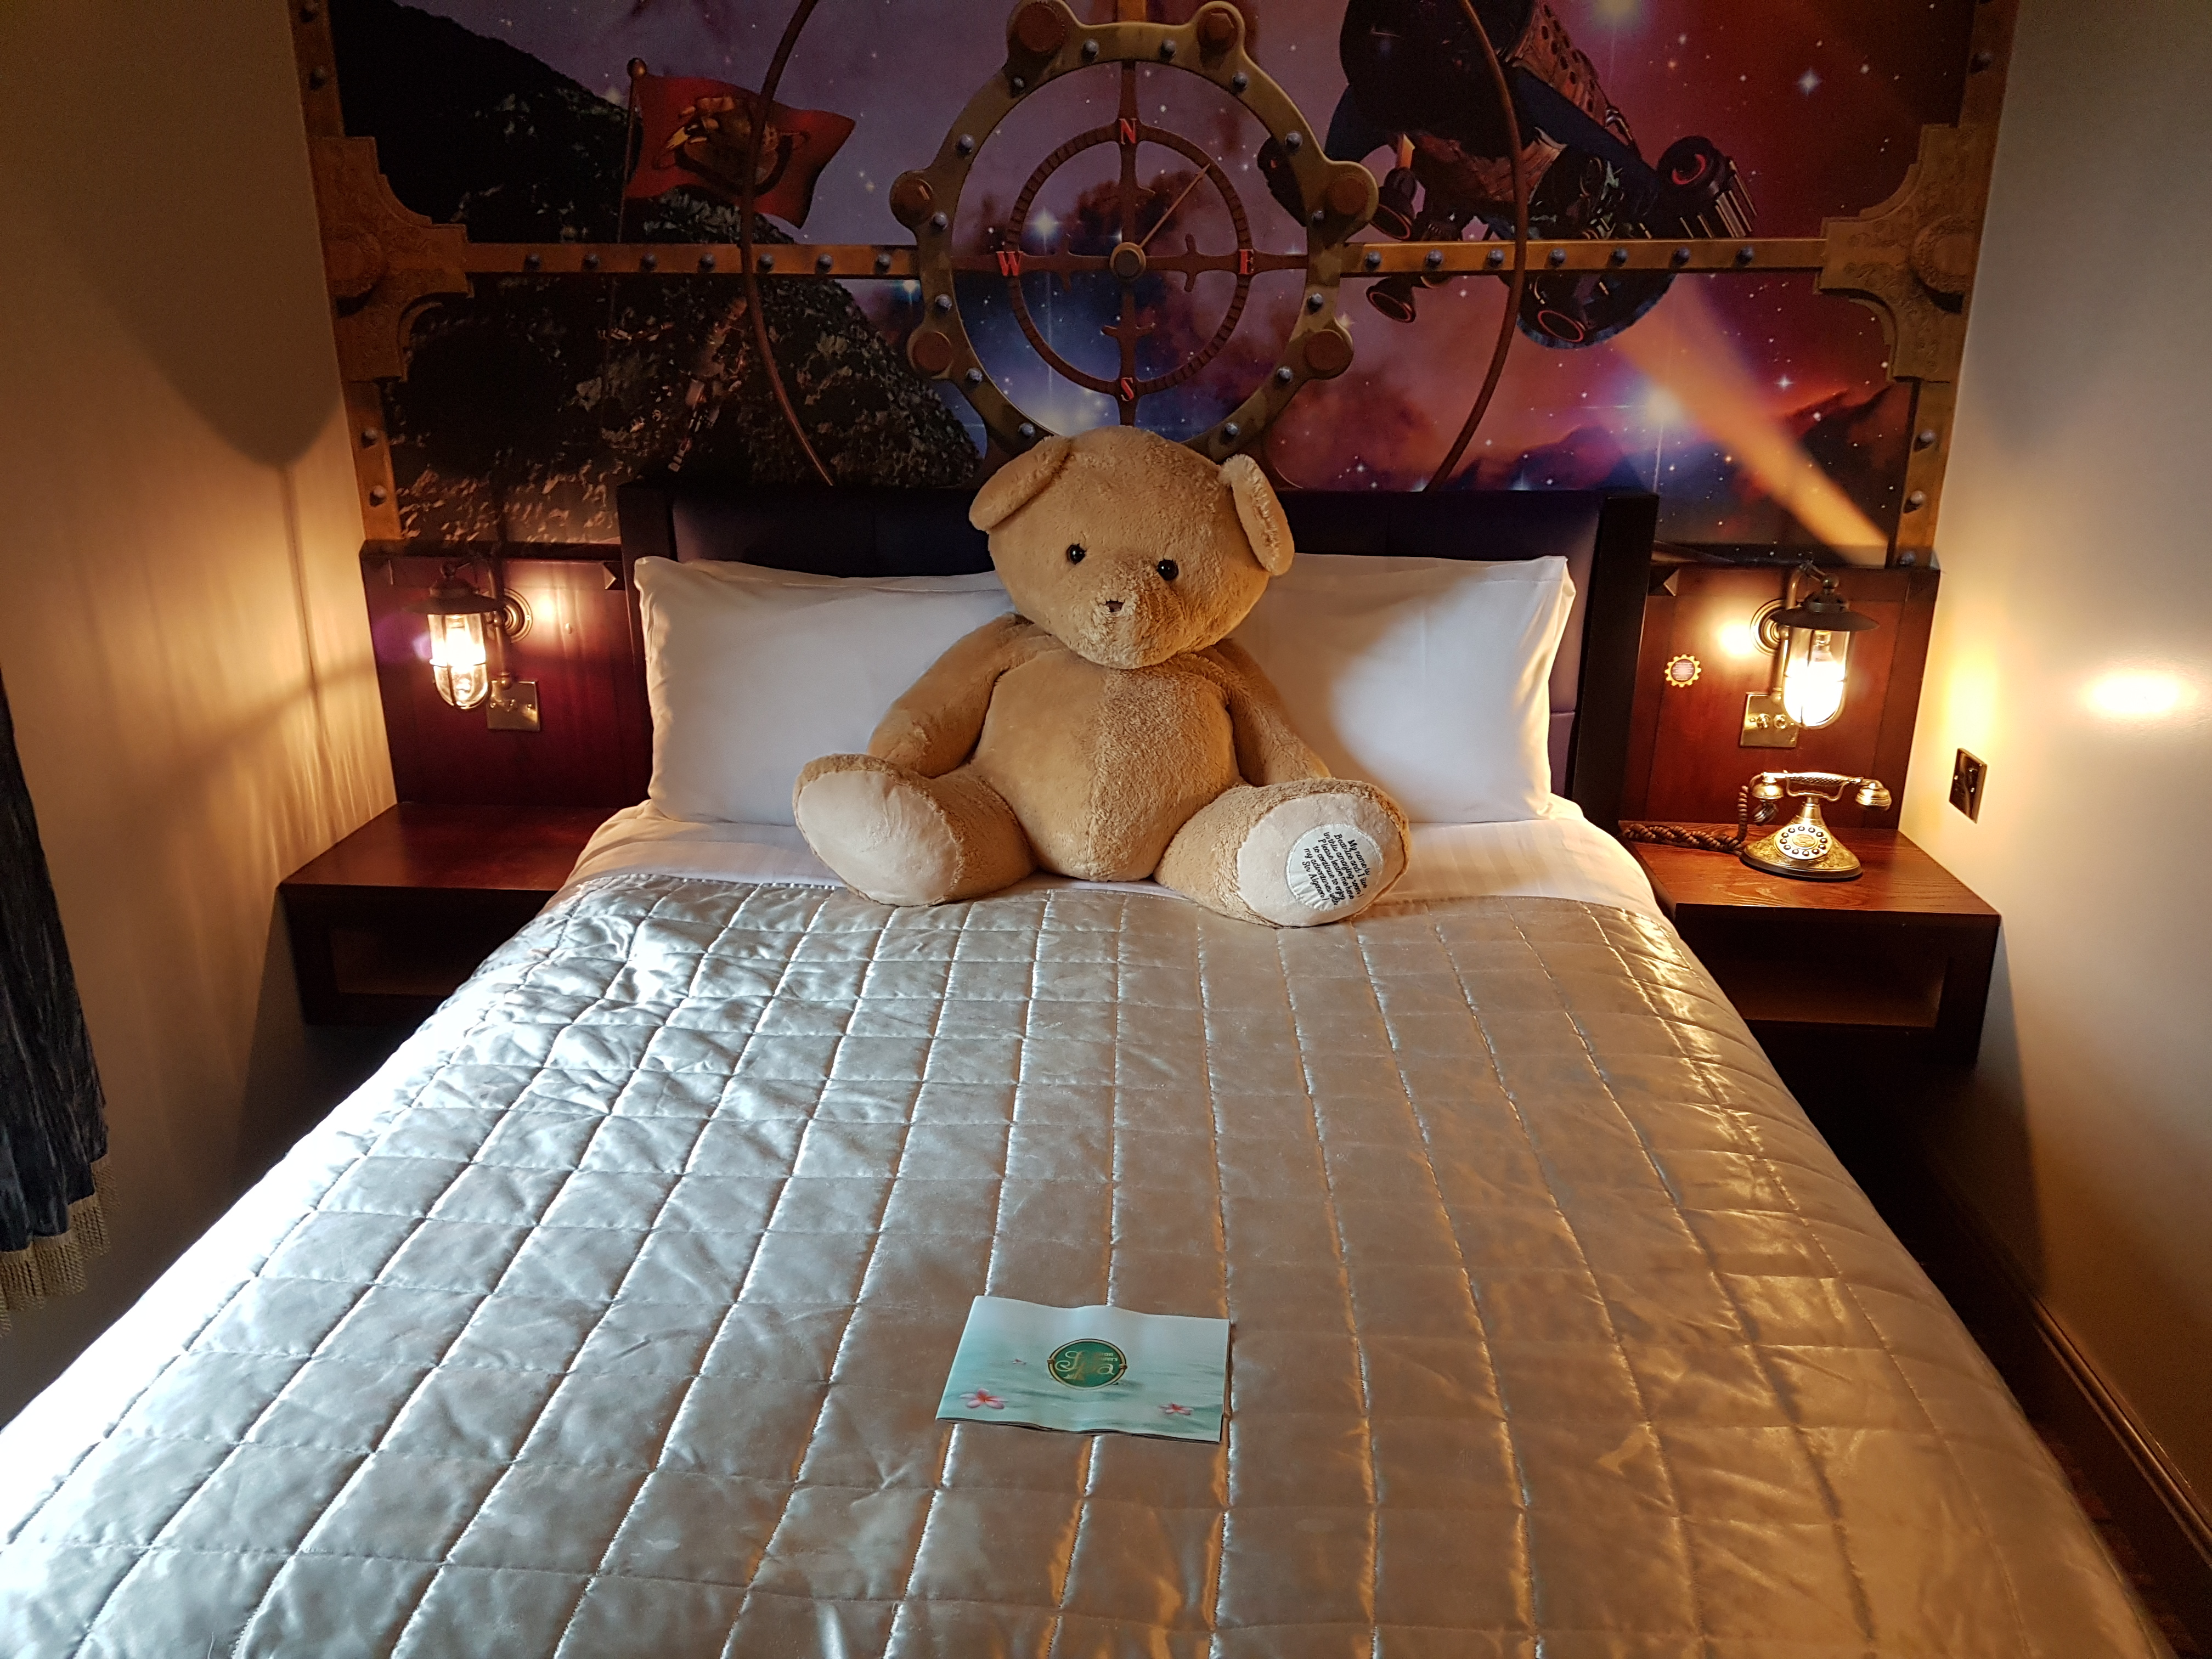 Beartrice the bear on our bed in the Alton Towers Hotel